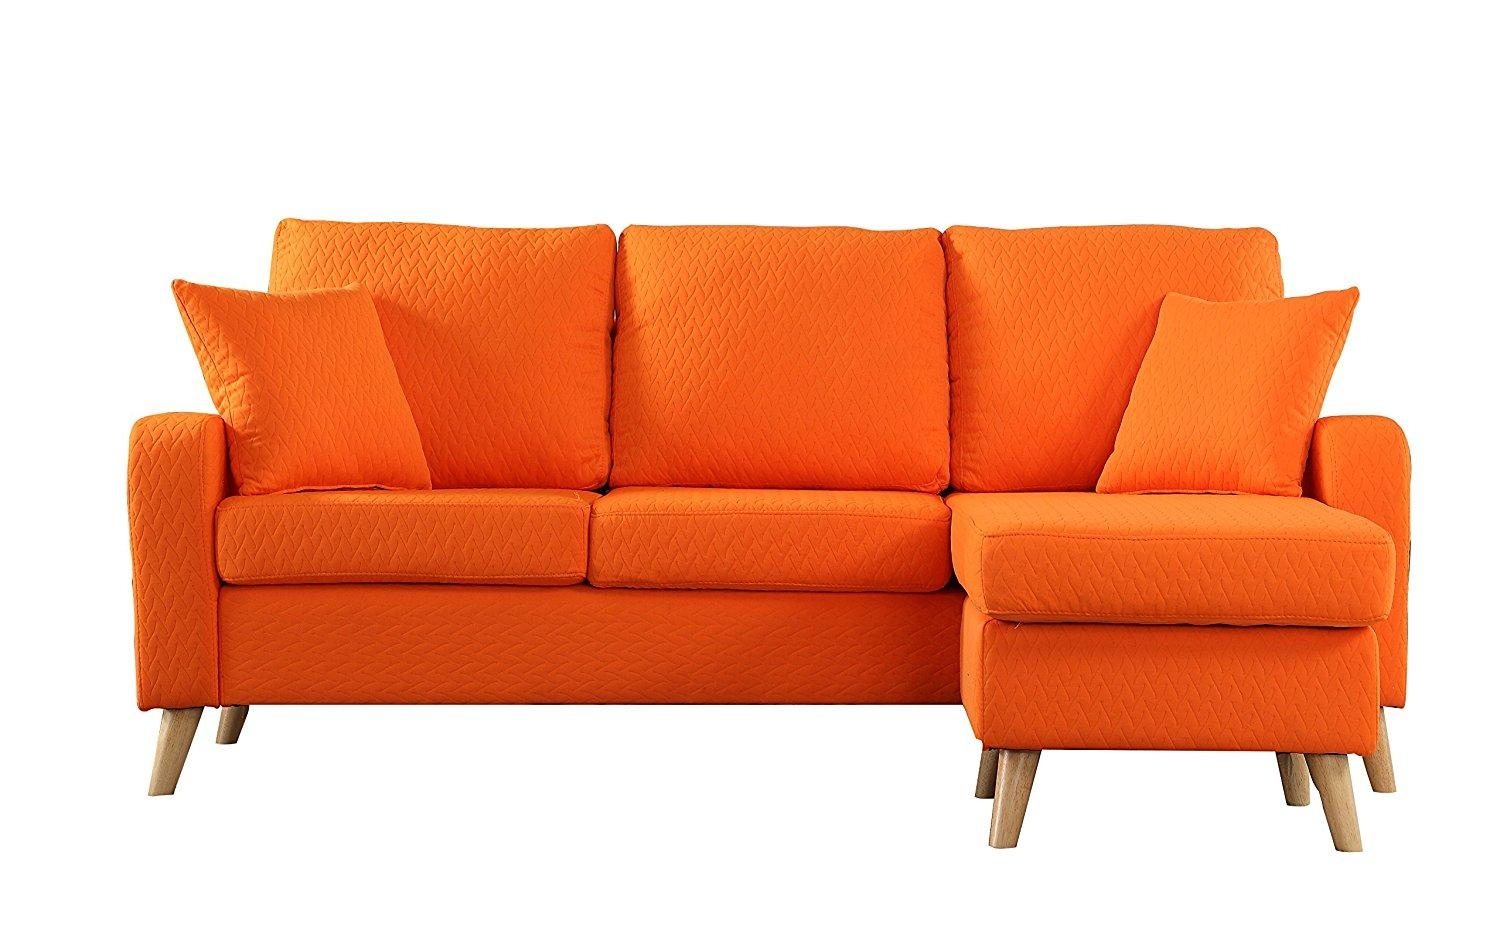 Living Room: Contemporary Mid Century Modern Furniture Legs With For Orange Modern Sofas (Image 11 of 20)